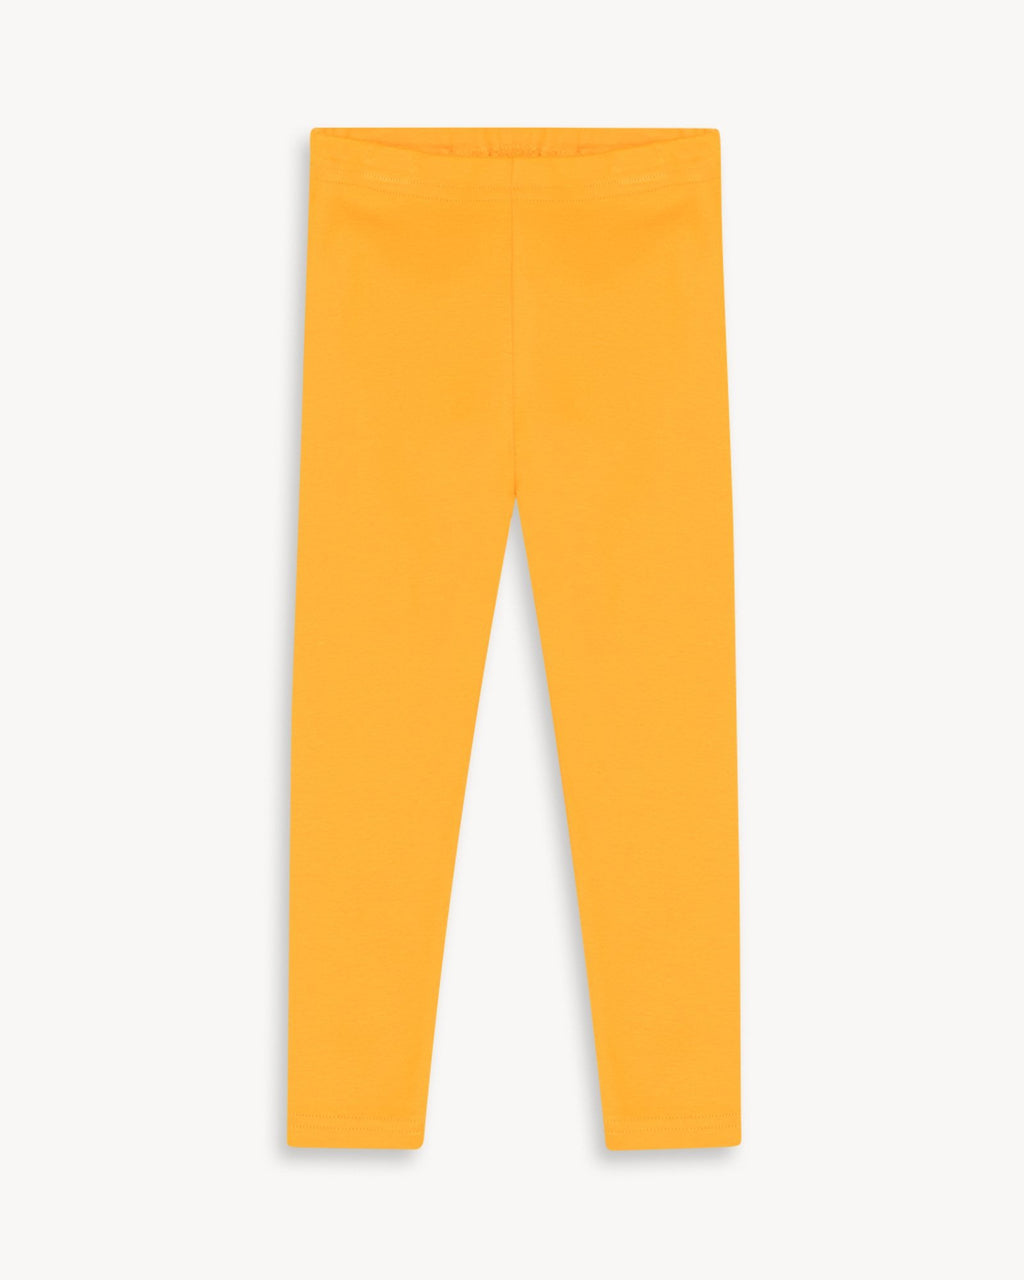 variant_1 | EN Yellow  basic Leggings for kids and babies | DE Gelbe Leggings für Kinder und Babies